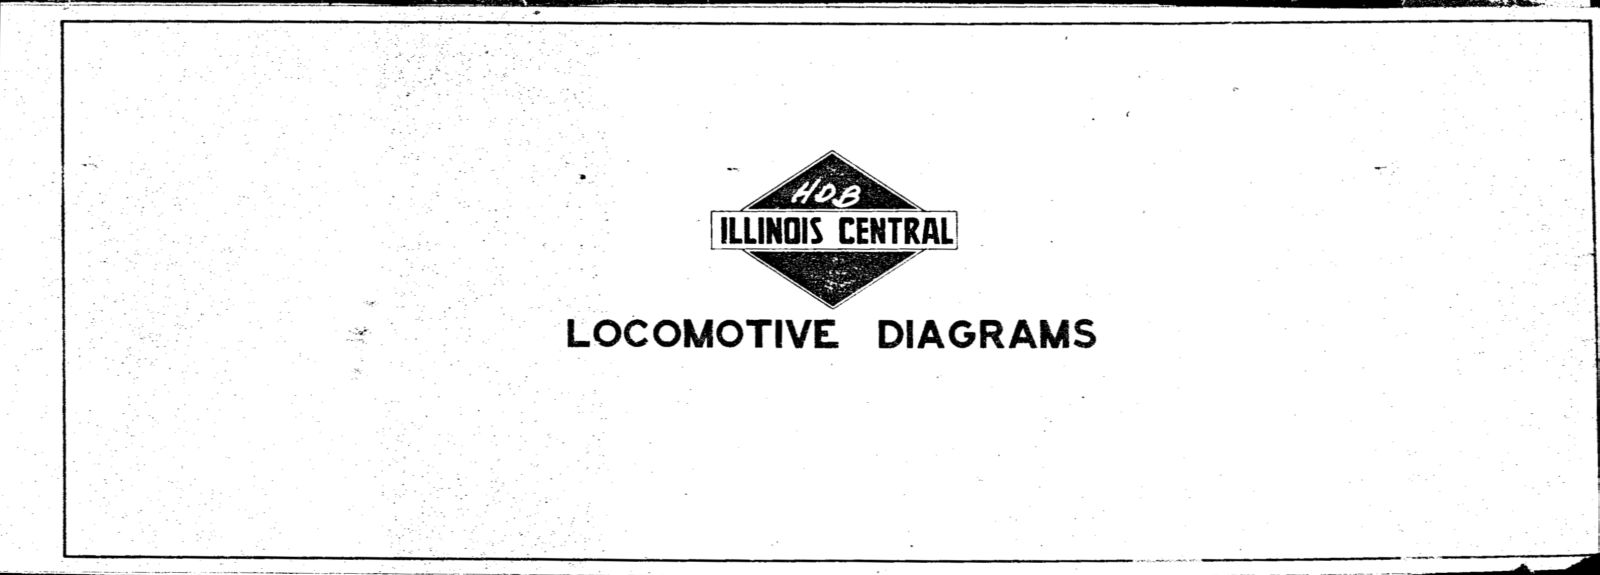 illinois central 1955 locomotive diagrams